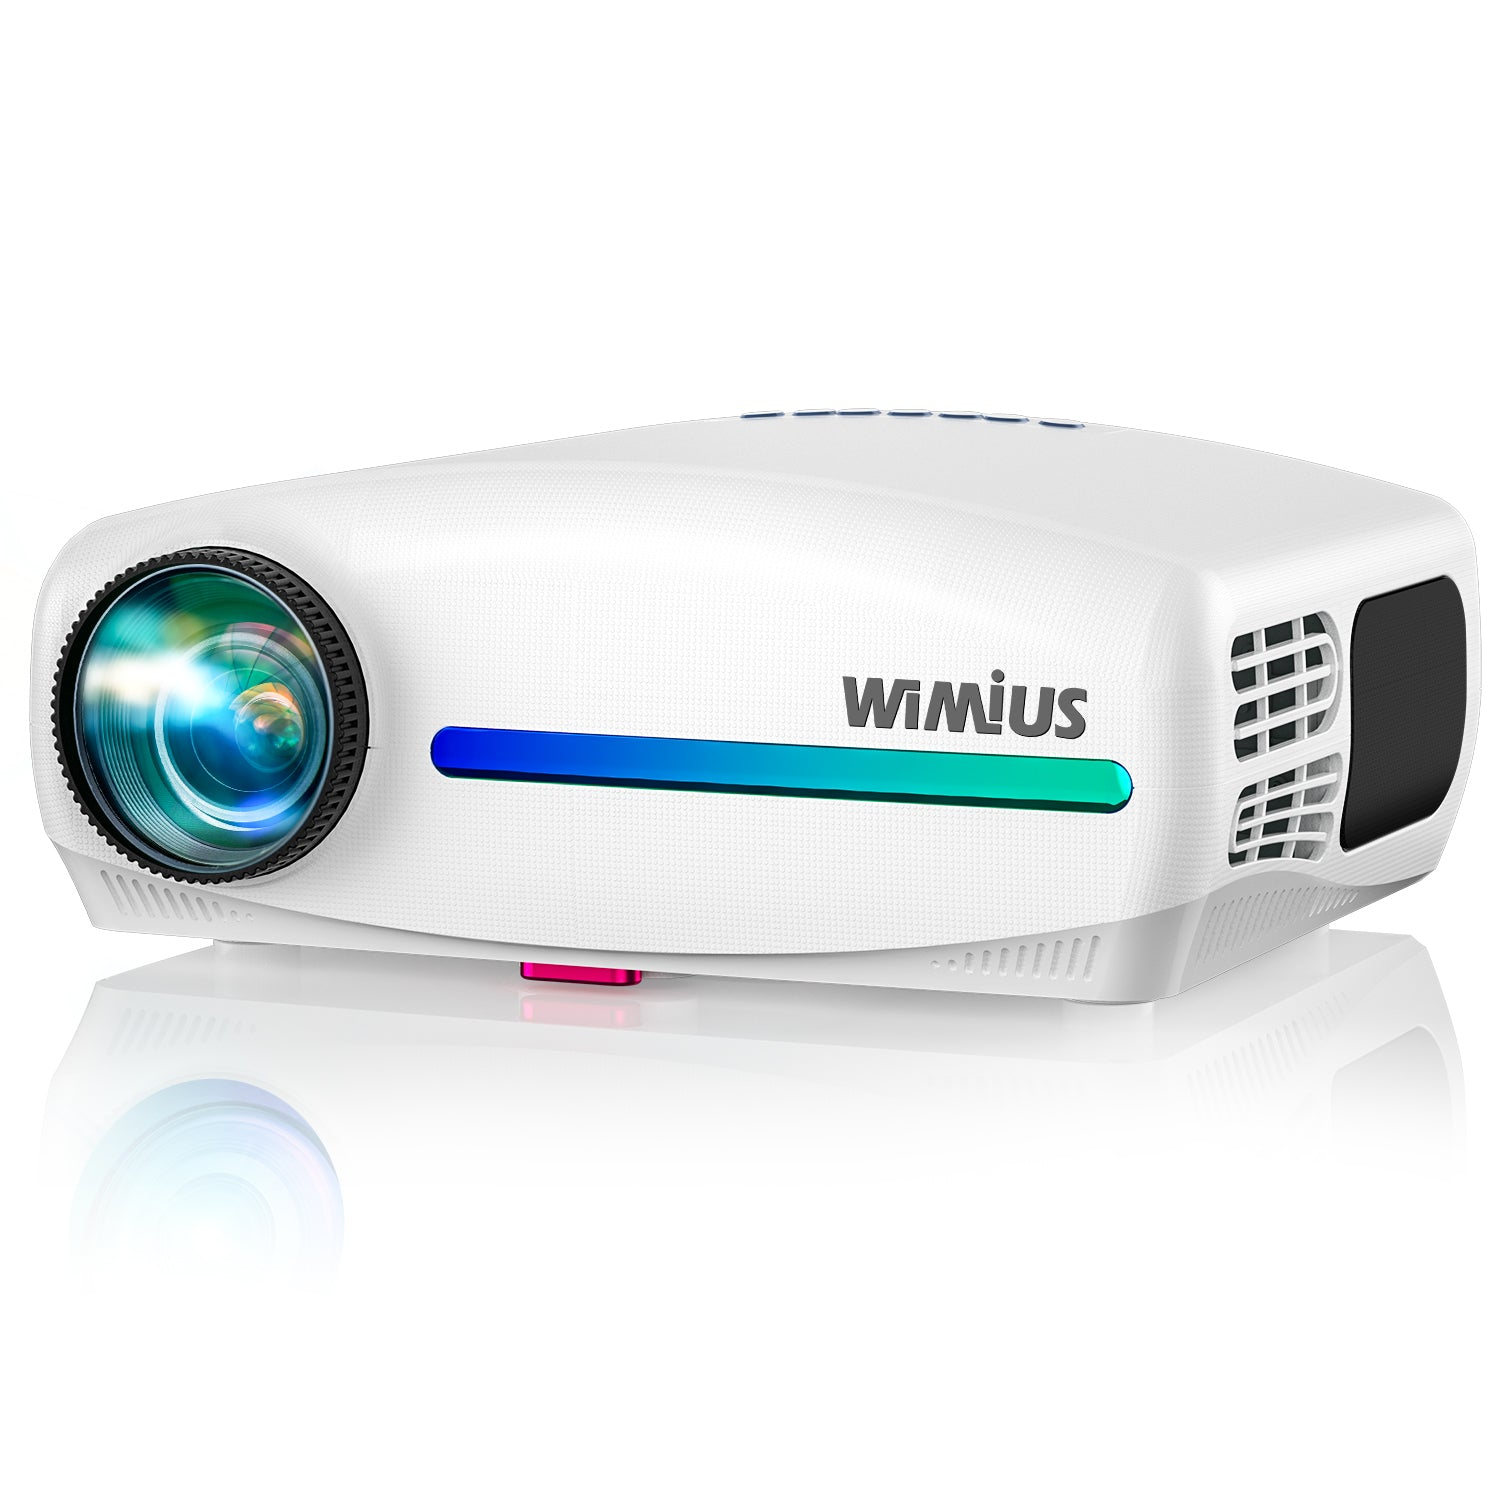 WiMiUS Video Projector - S1